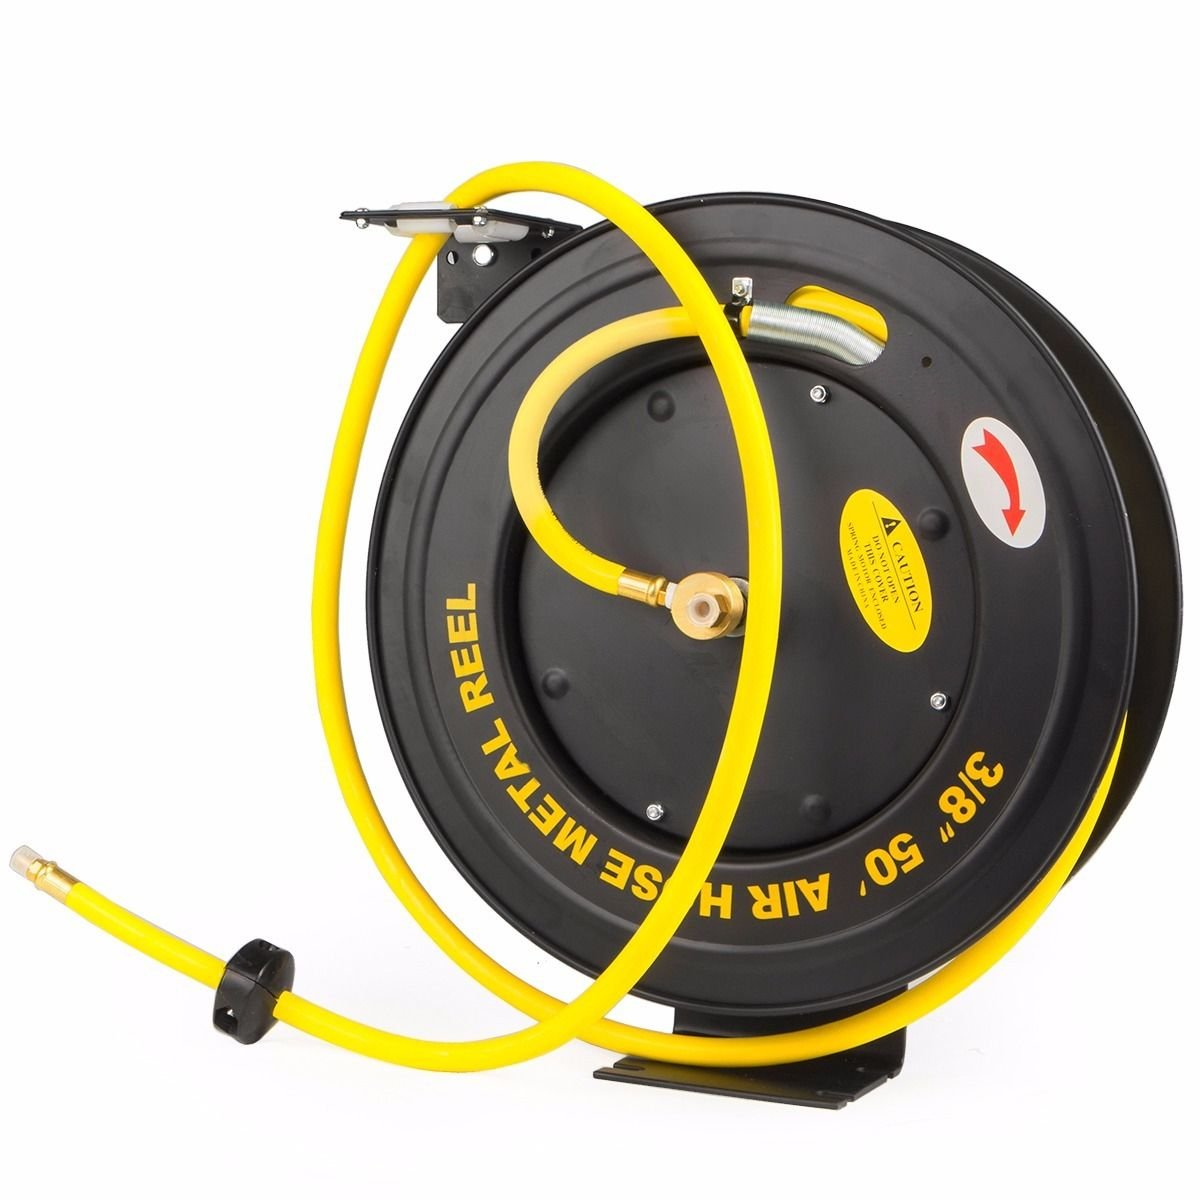 XtremepowerUS Auto-Rewind Retractable 50-Ft x 3/8-Inch Air Hose Reel with Rubber Hose